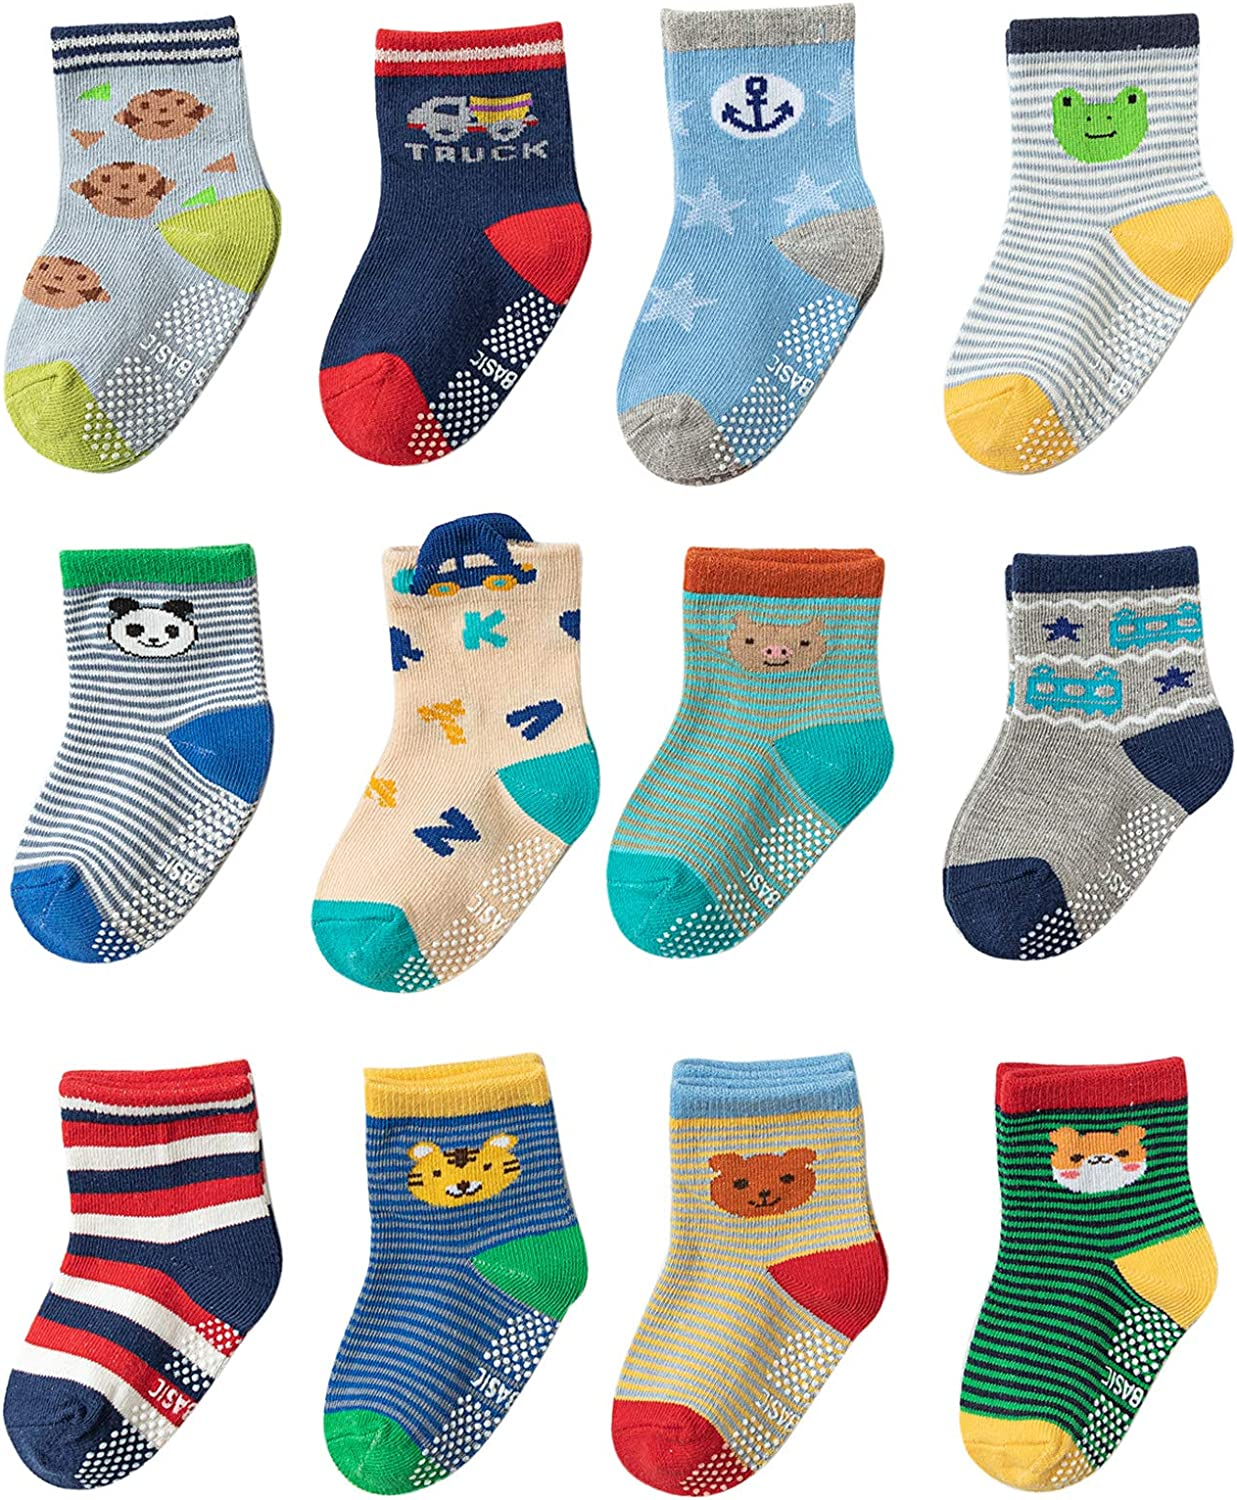 WOFTAM Baby Crew Socks Non Slip Grip Max 69% OFF S Ankle Skid New popularity With